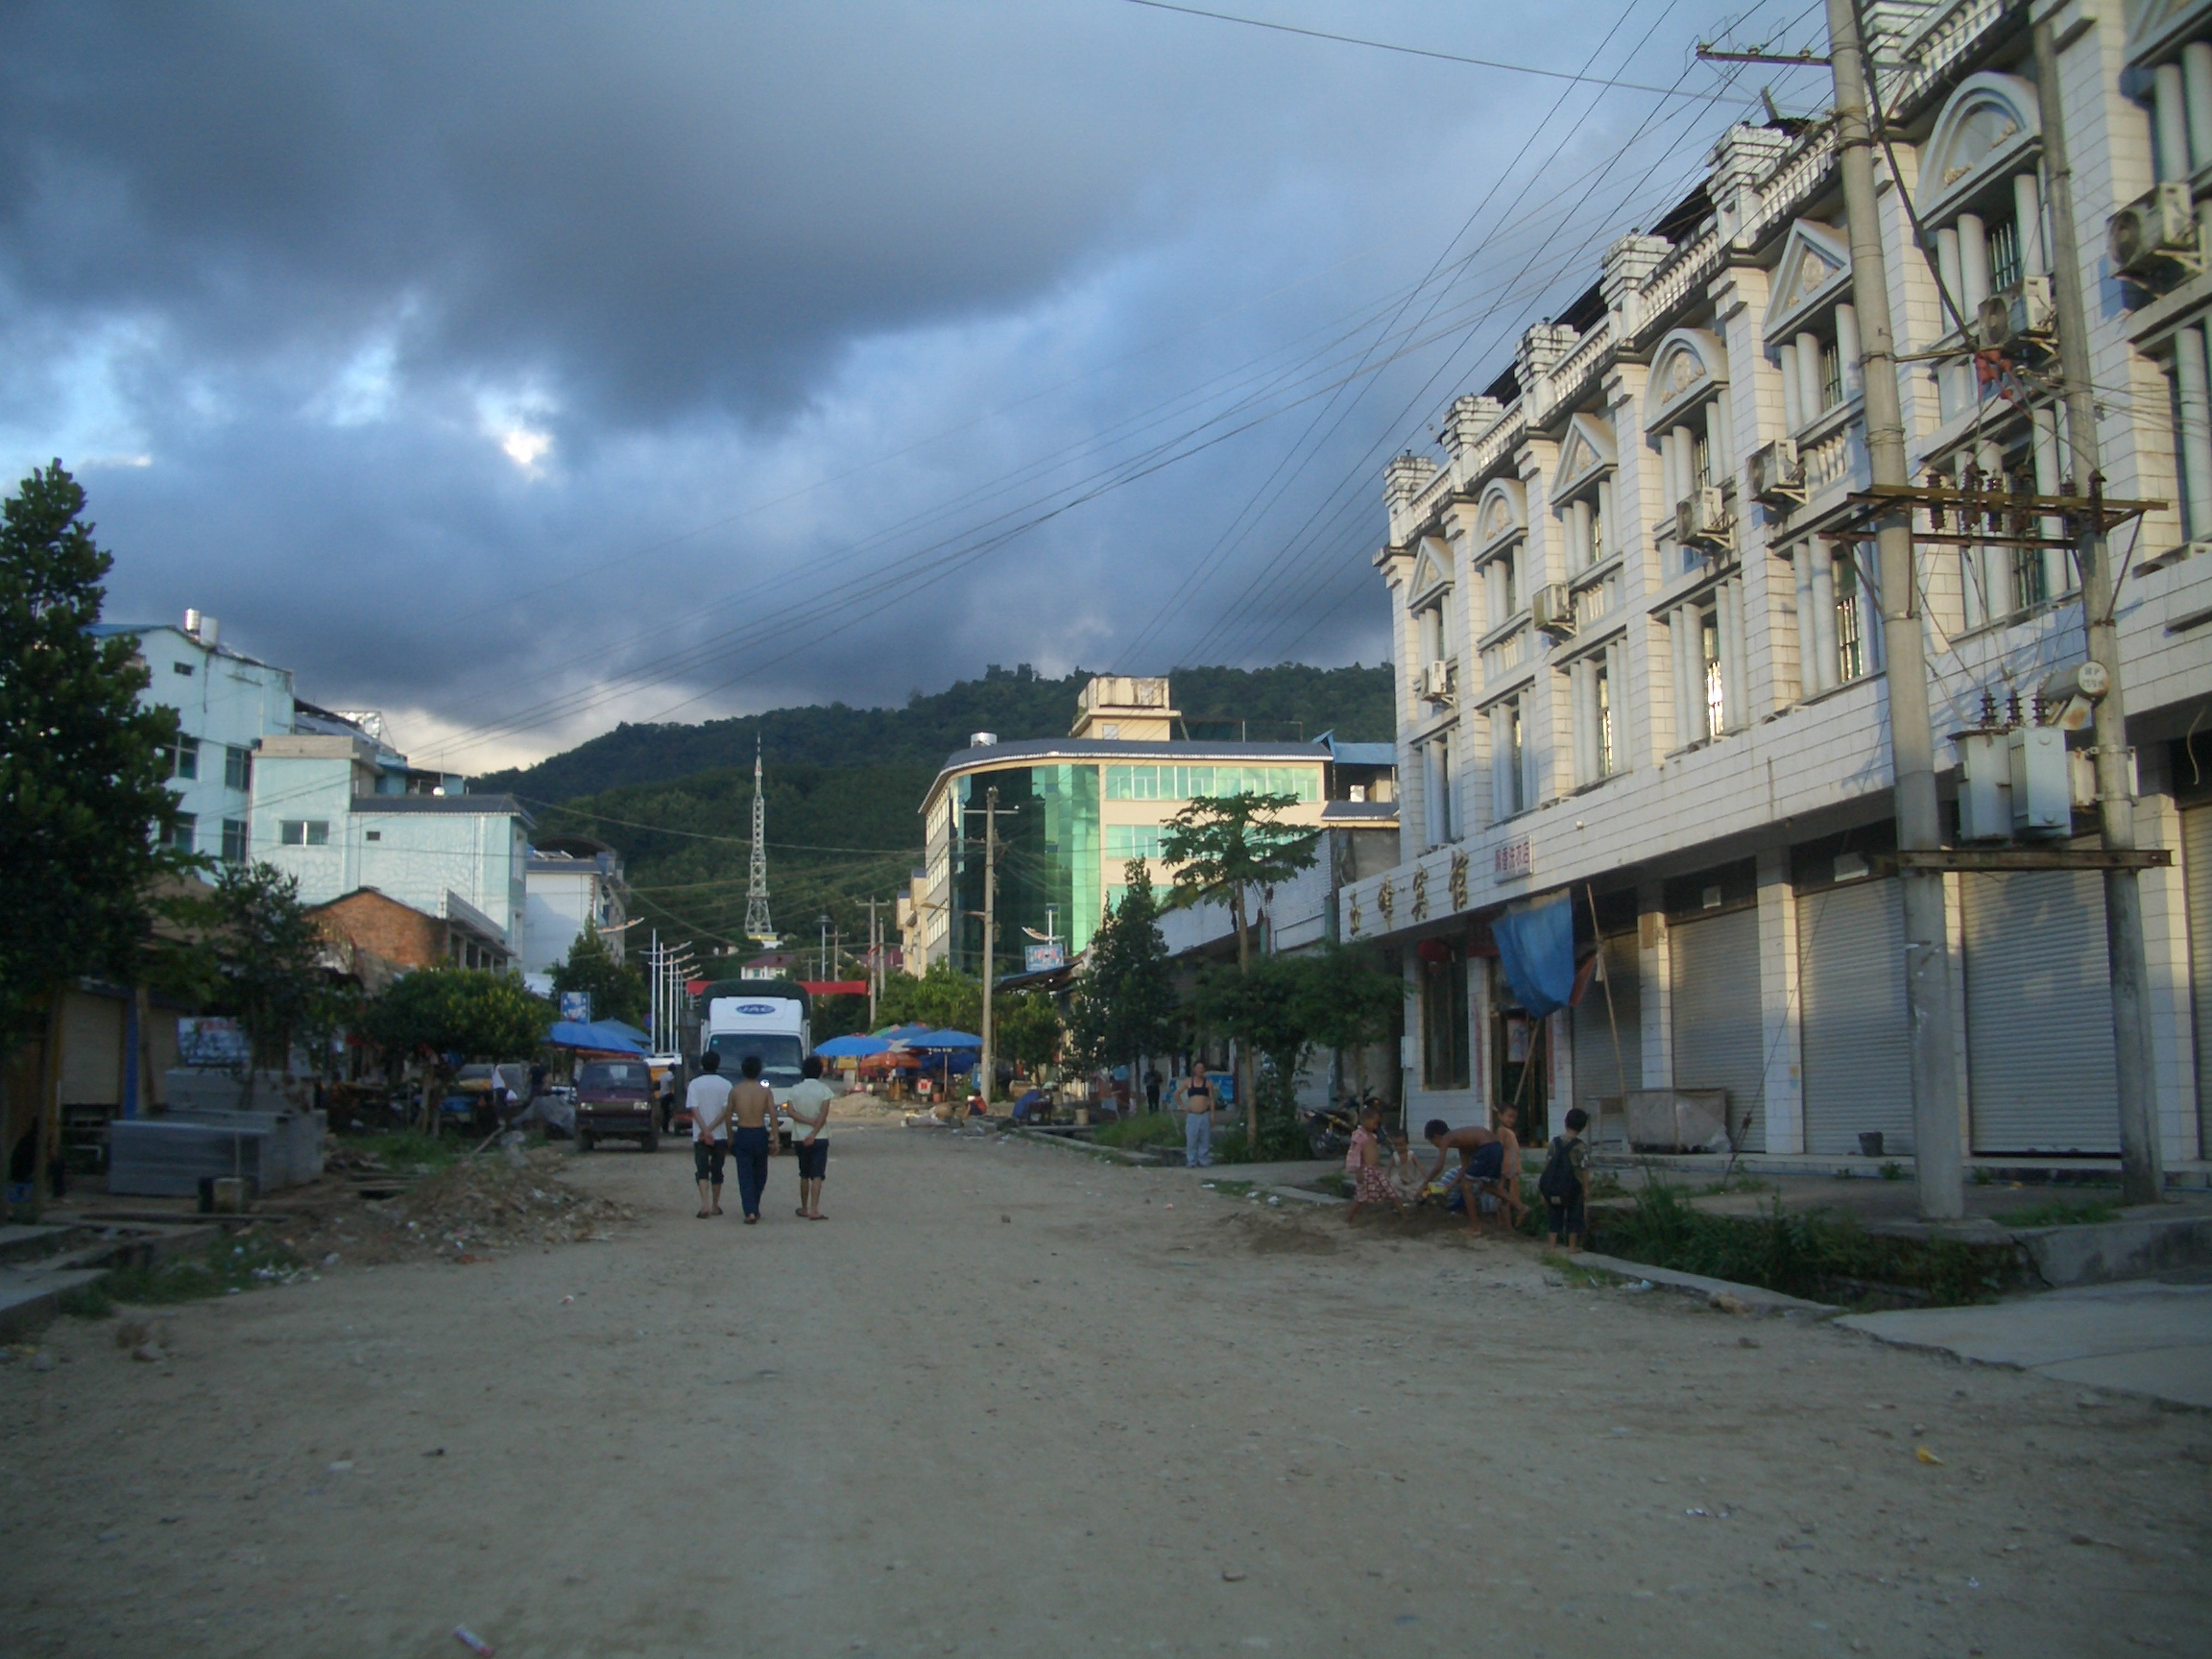 The brothel is in the building to the right. This is a Chinese neighborhood of a S.E. Asian country.